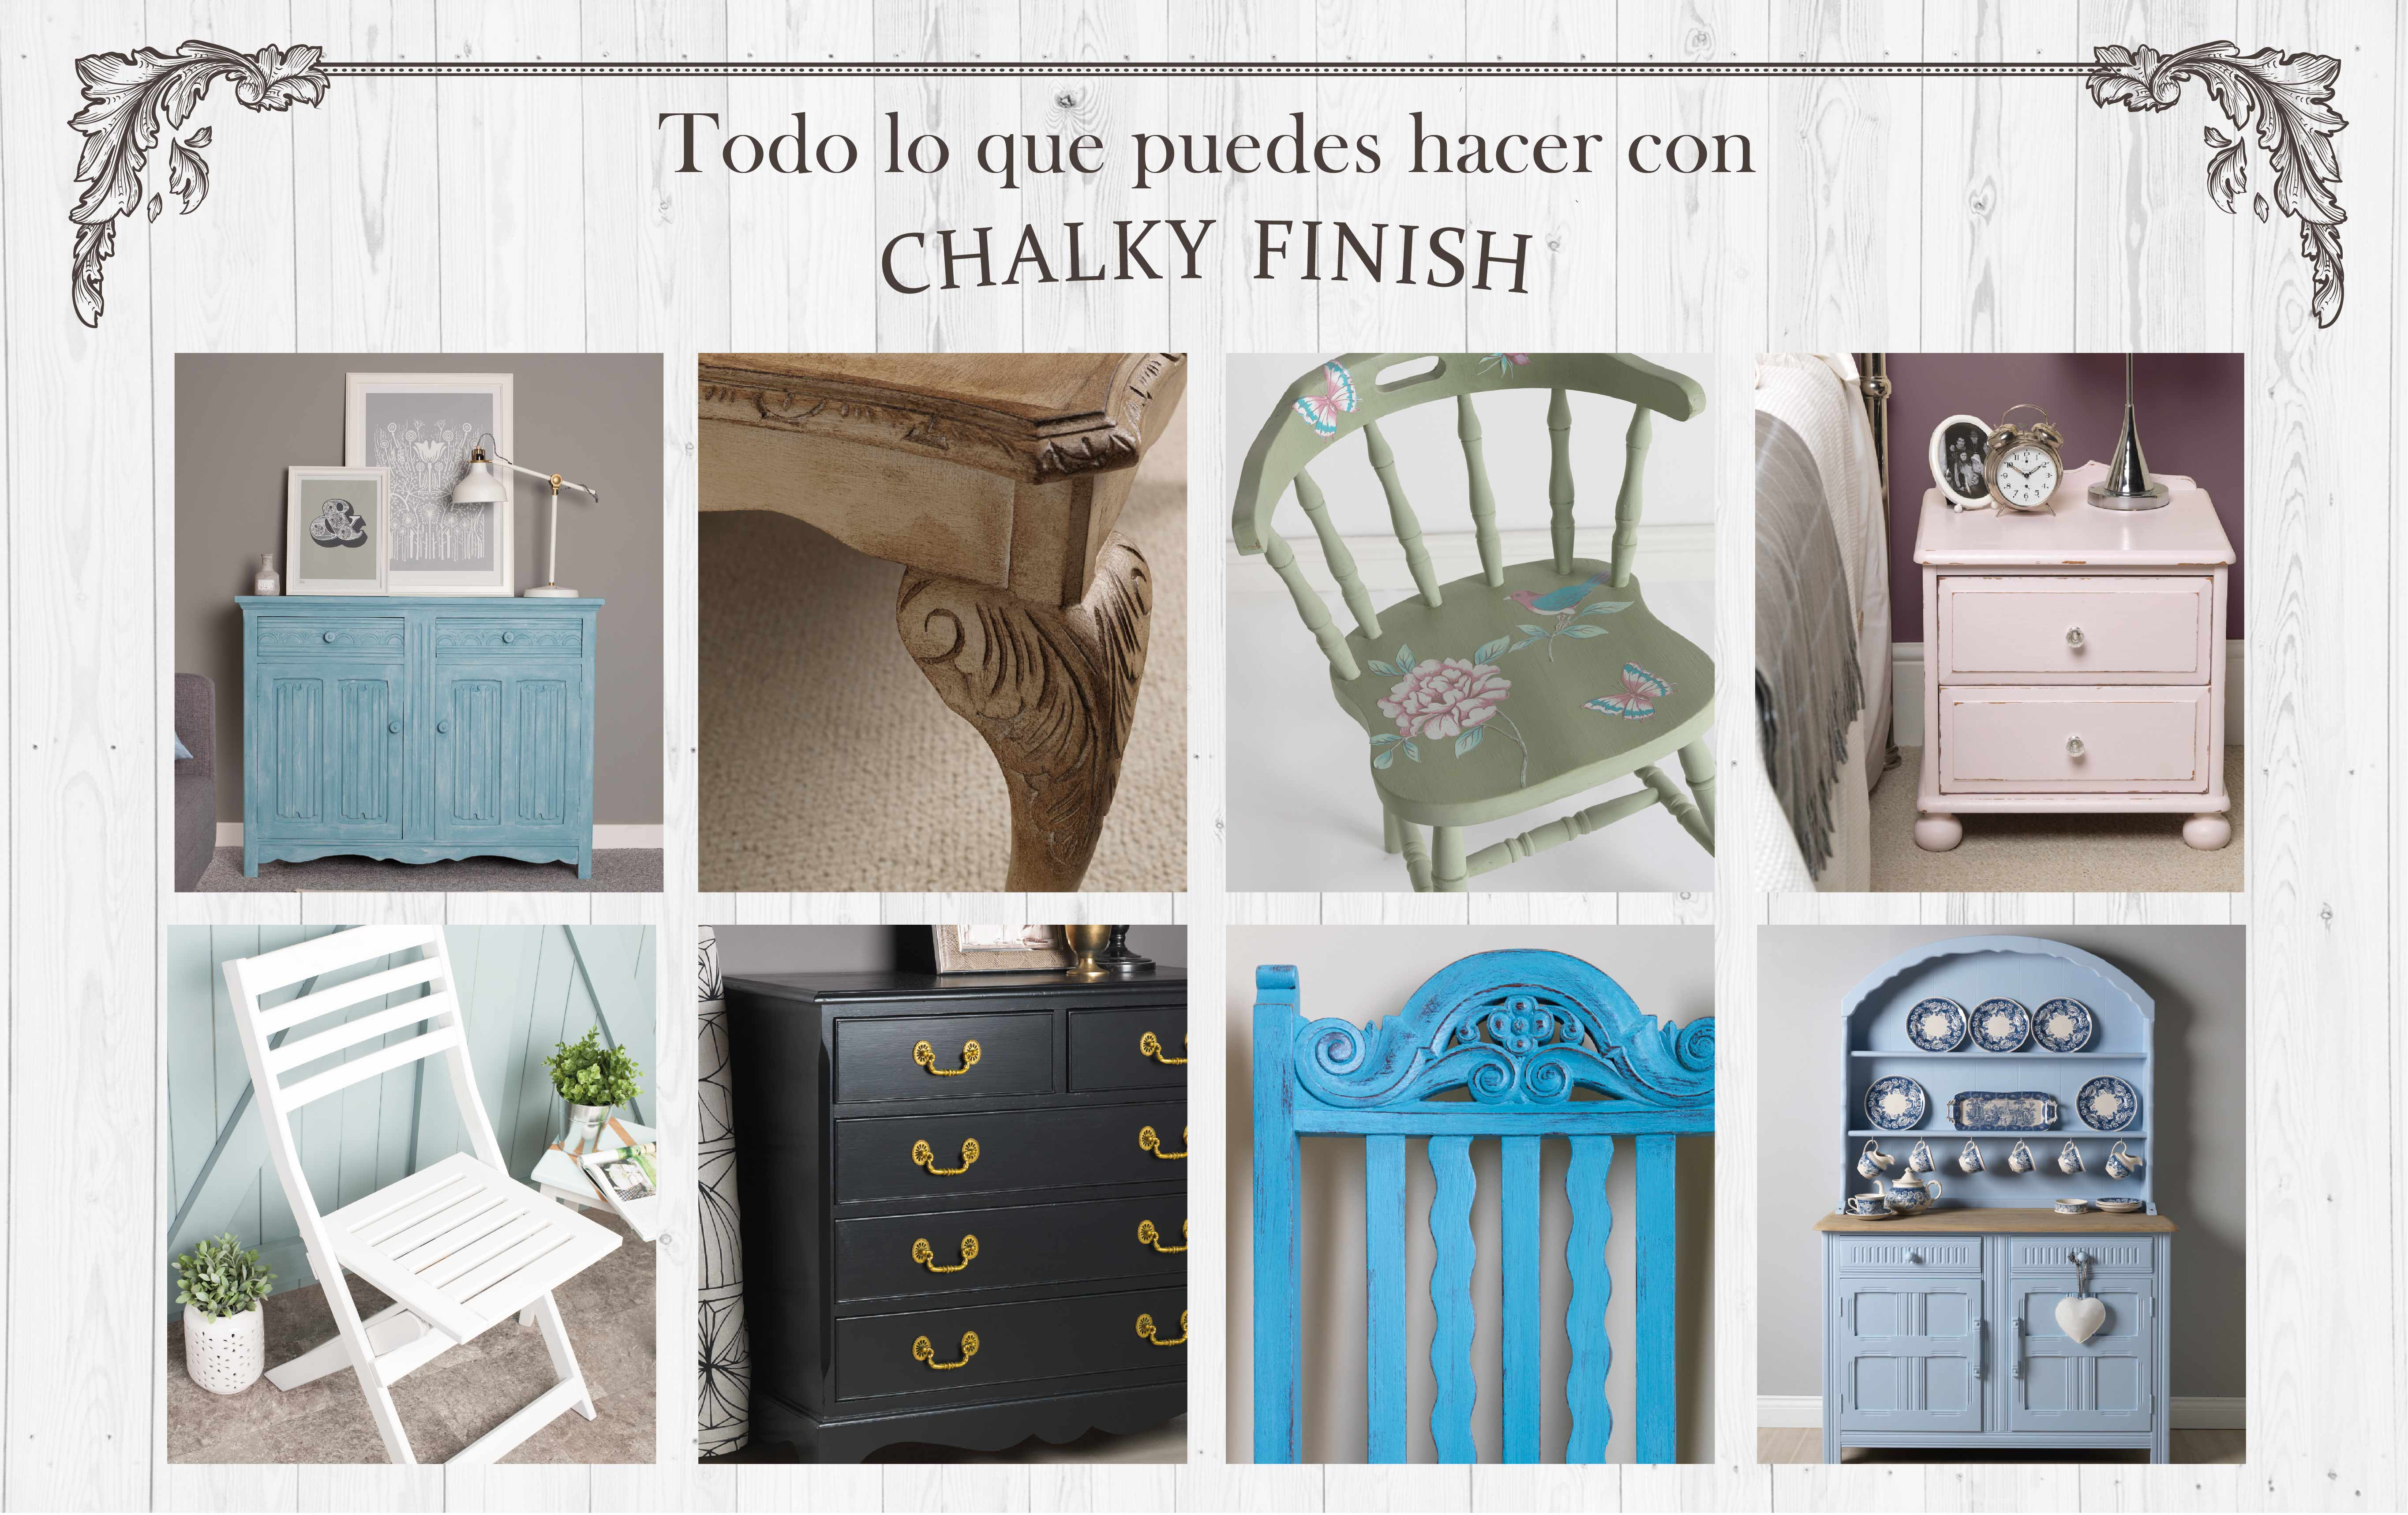 Chalky Finish collage